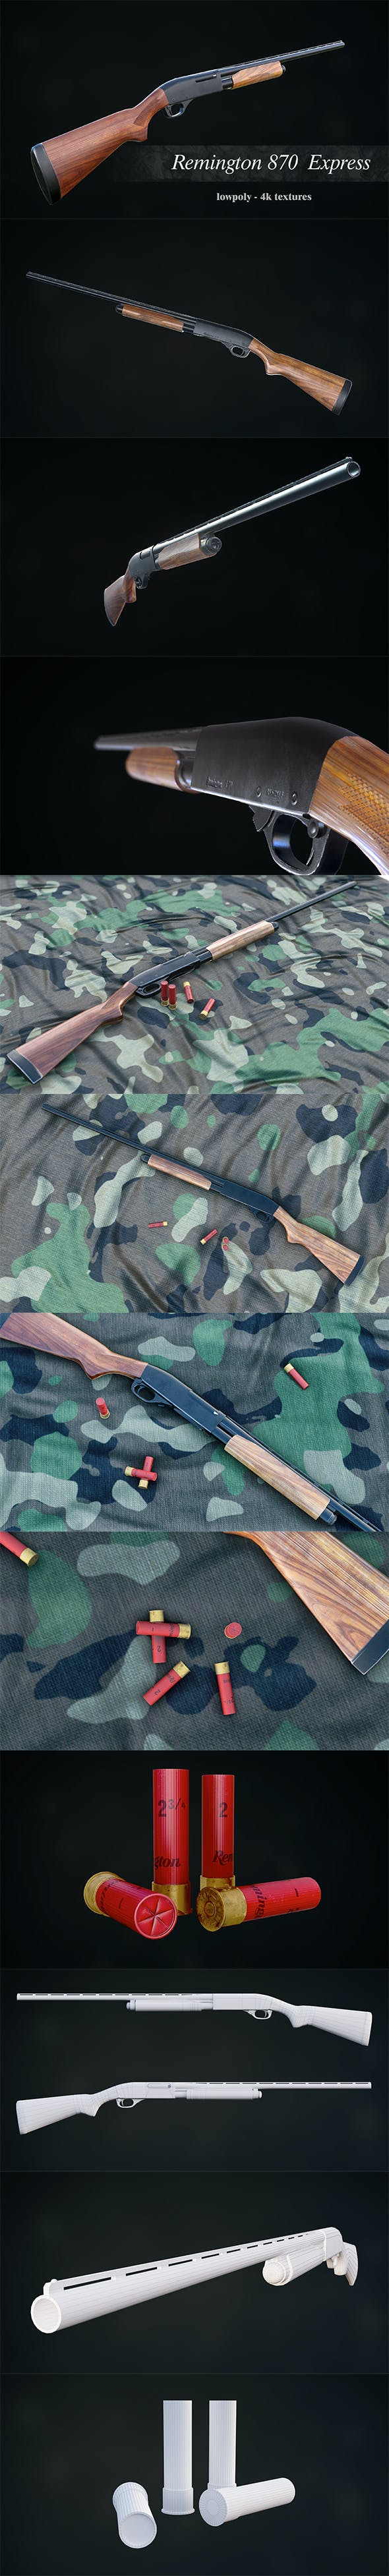 Low Poly Remington 870 Express - 3DOcean Item for Sale